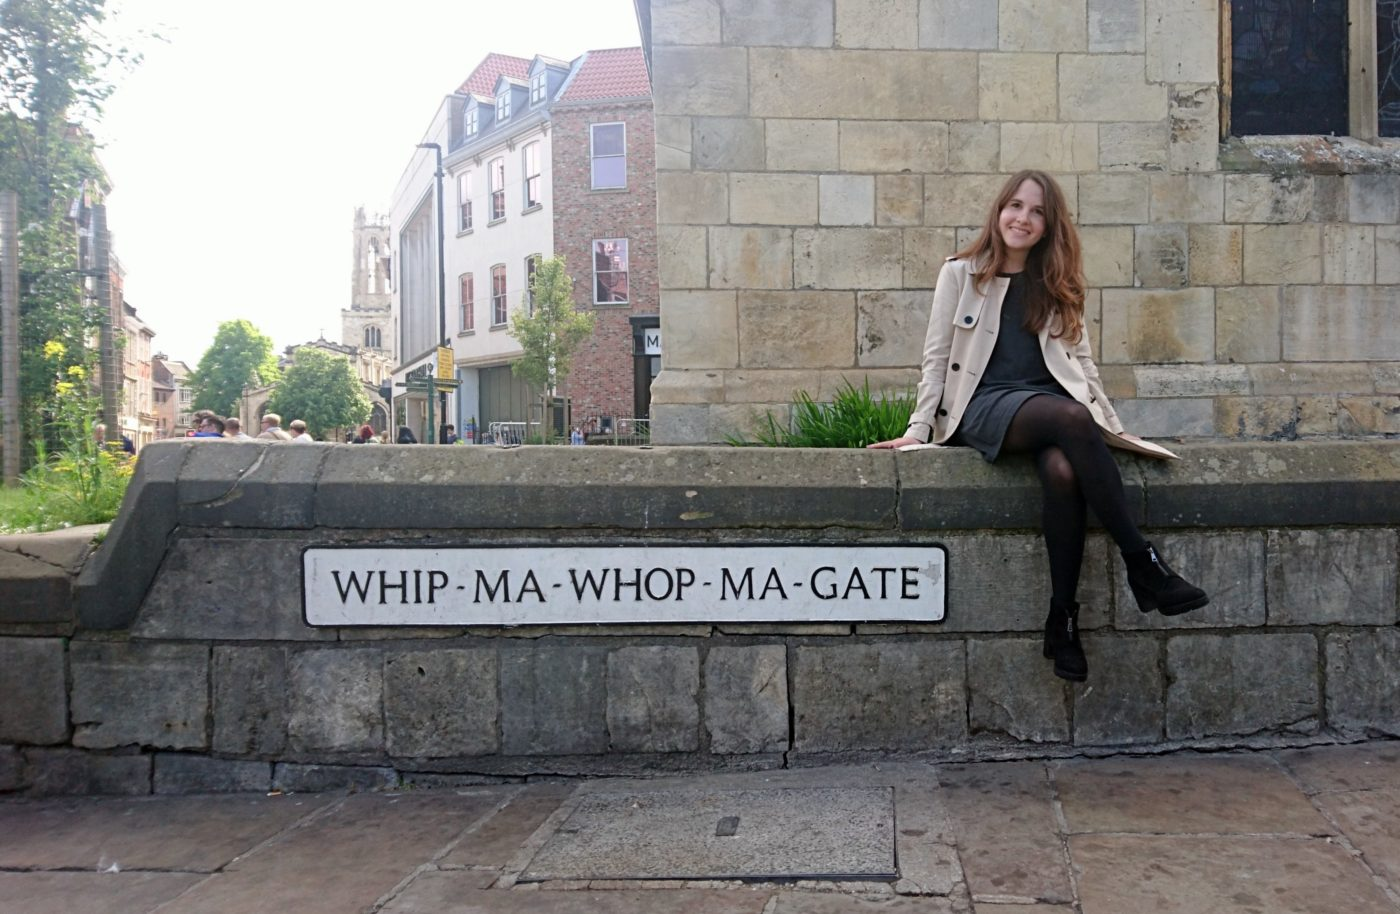 whip-ma-whop-ma gate york